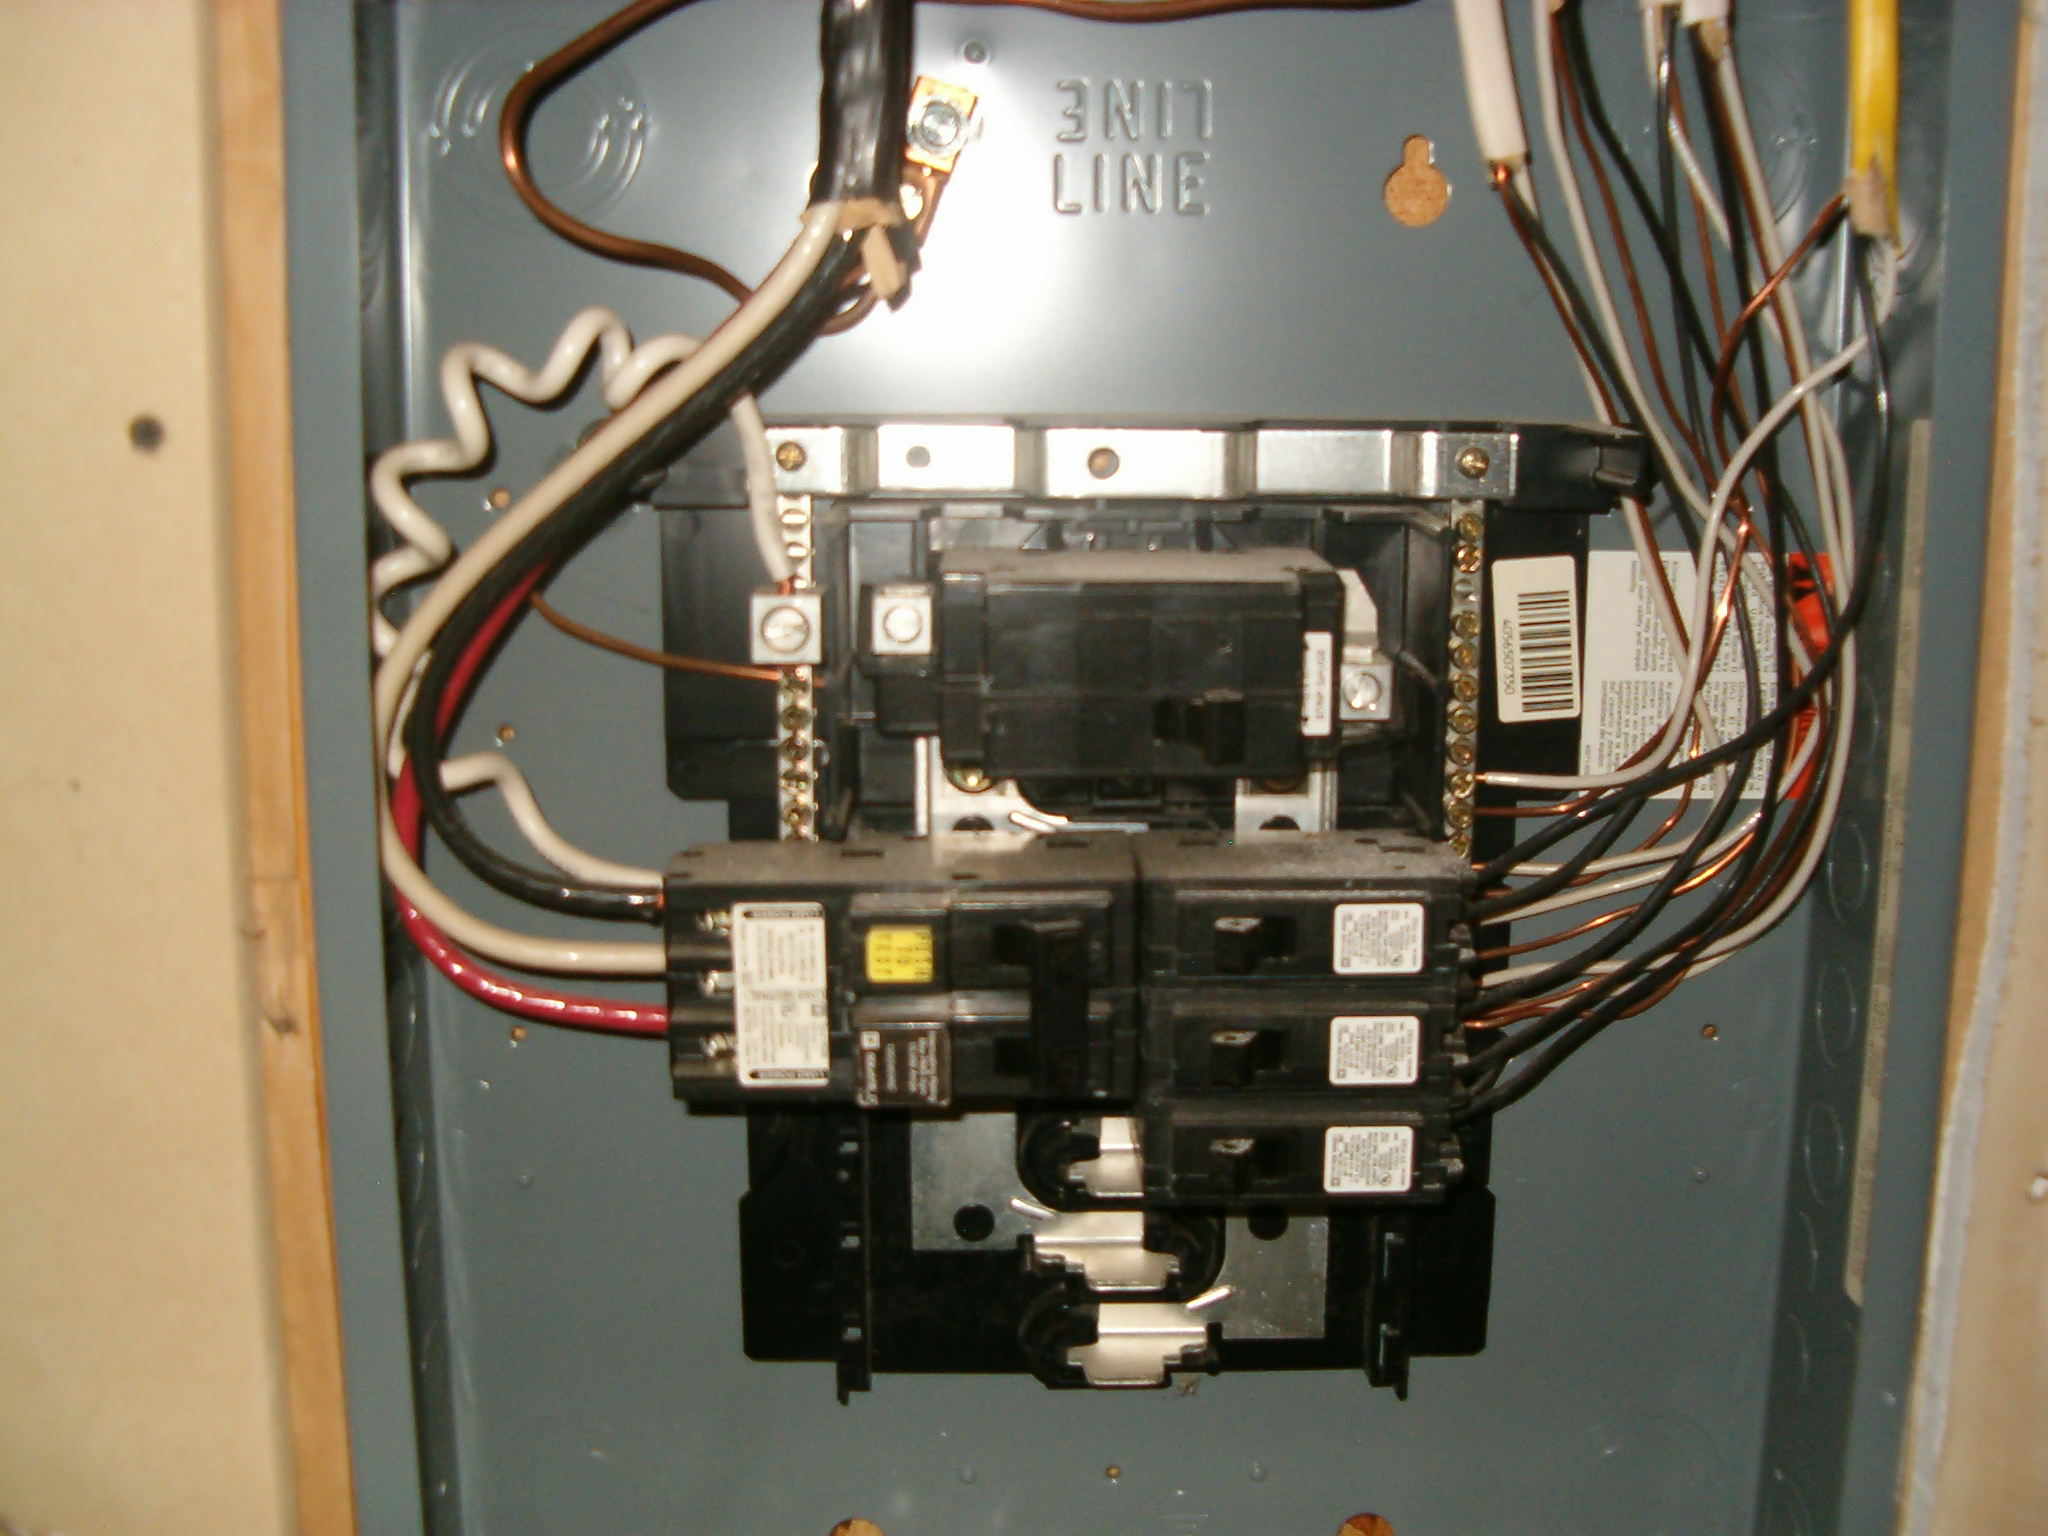 Subpanel Wiring Internachi Inspection Forum Browse Data Diagram A From Fed Into Gfci Breaker Panel